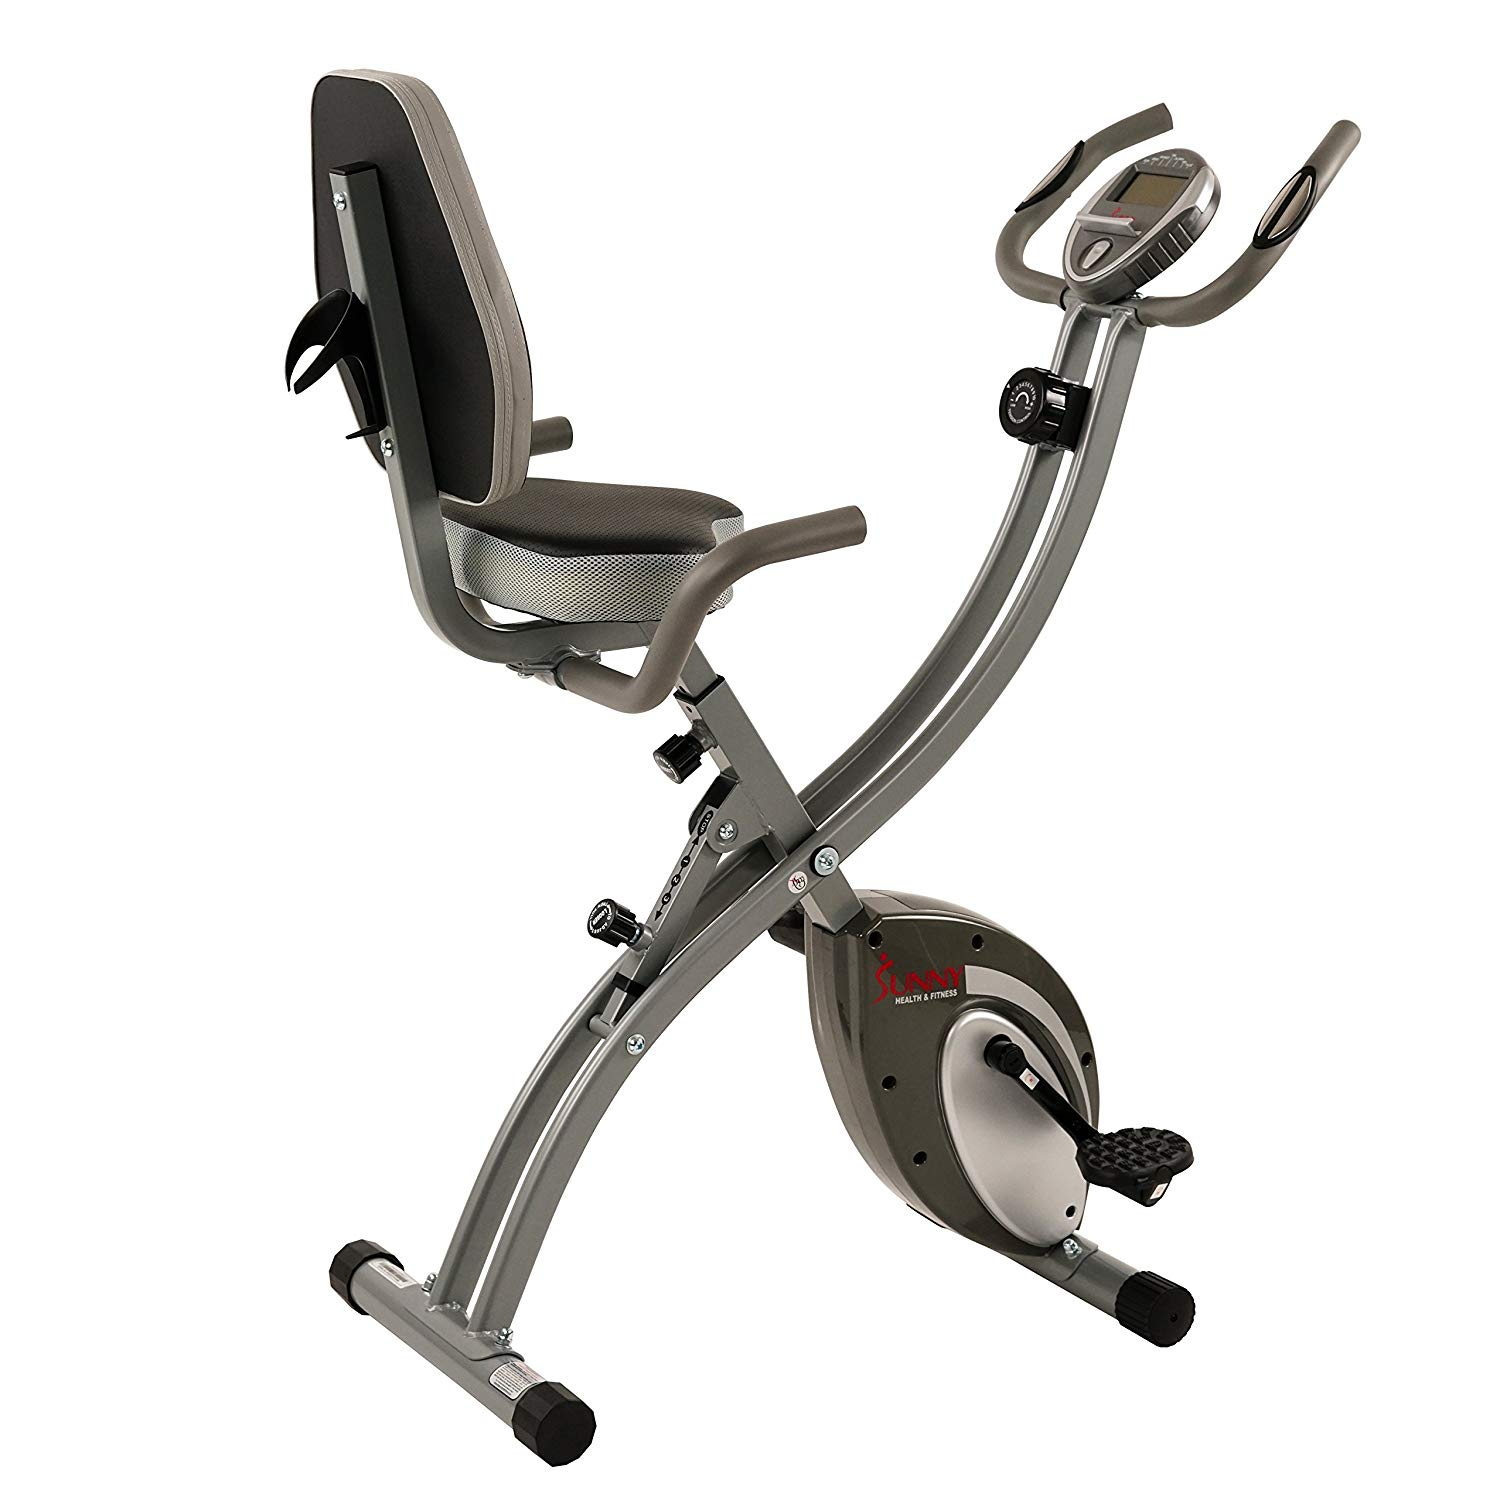 ef0ad18a207 Get Quotations · Sunny Health   Fitness Folding Exercise Bike Magnetic Semi  Recumbent Upright High Weight Capacity Pulse Monitoring